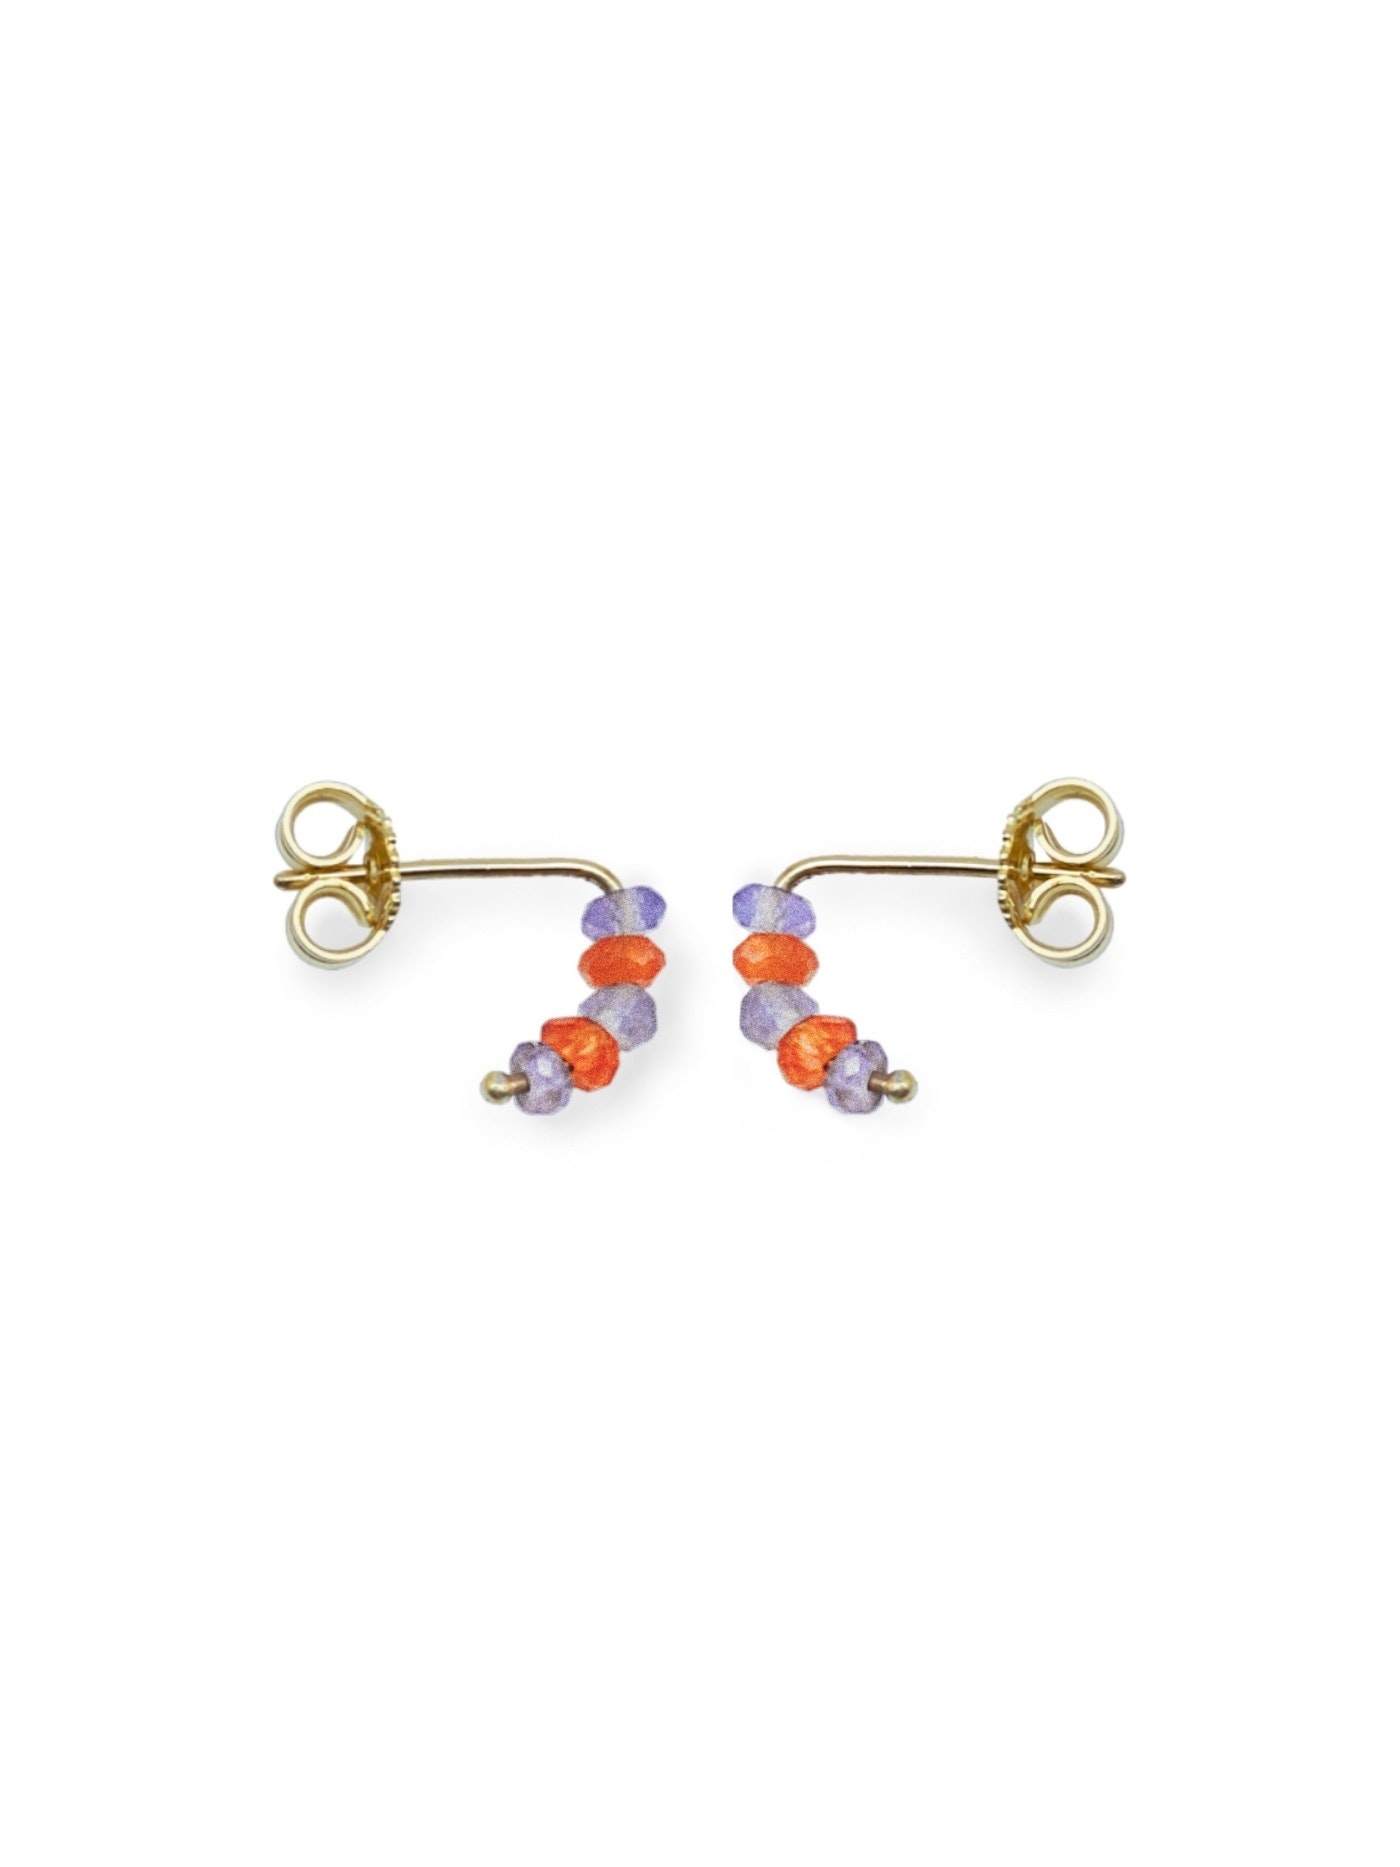 Tuttifrutti mini earrings 18kt gold and semiprecious stones- orange and lilac- made in Florence by Margherita de Martino Norante